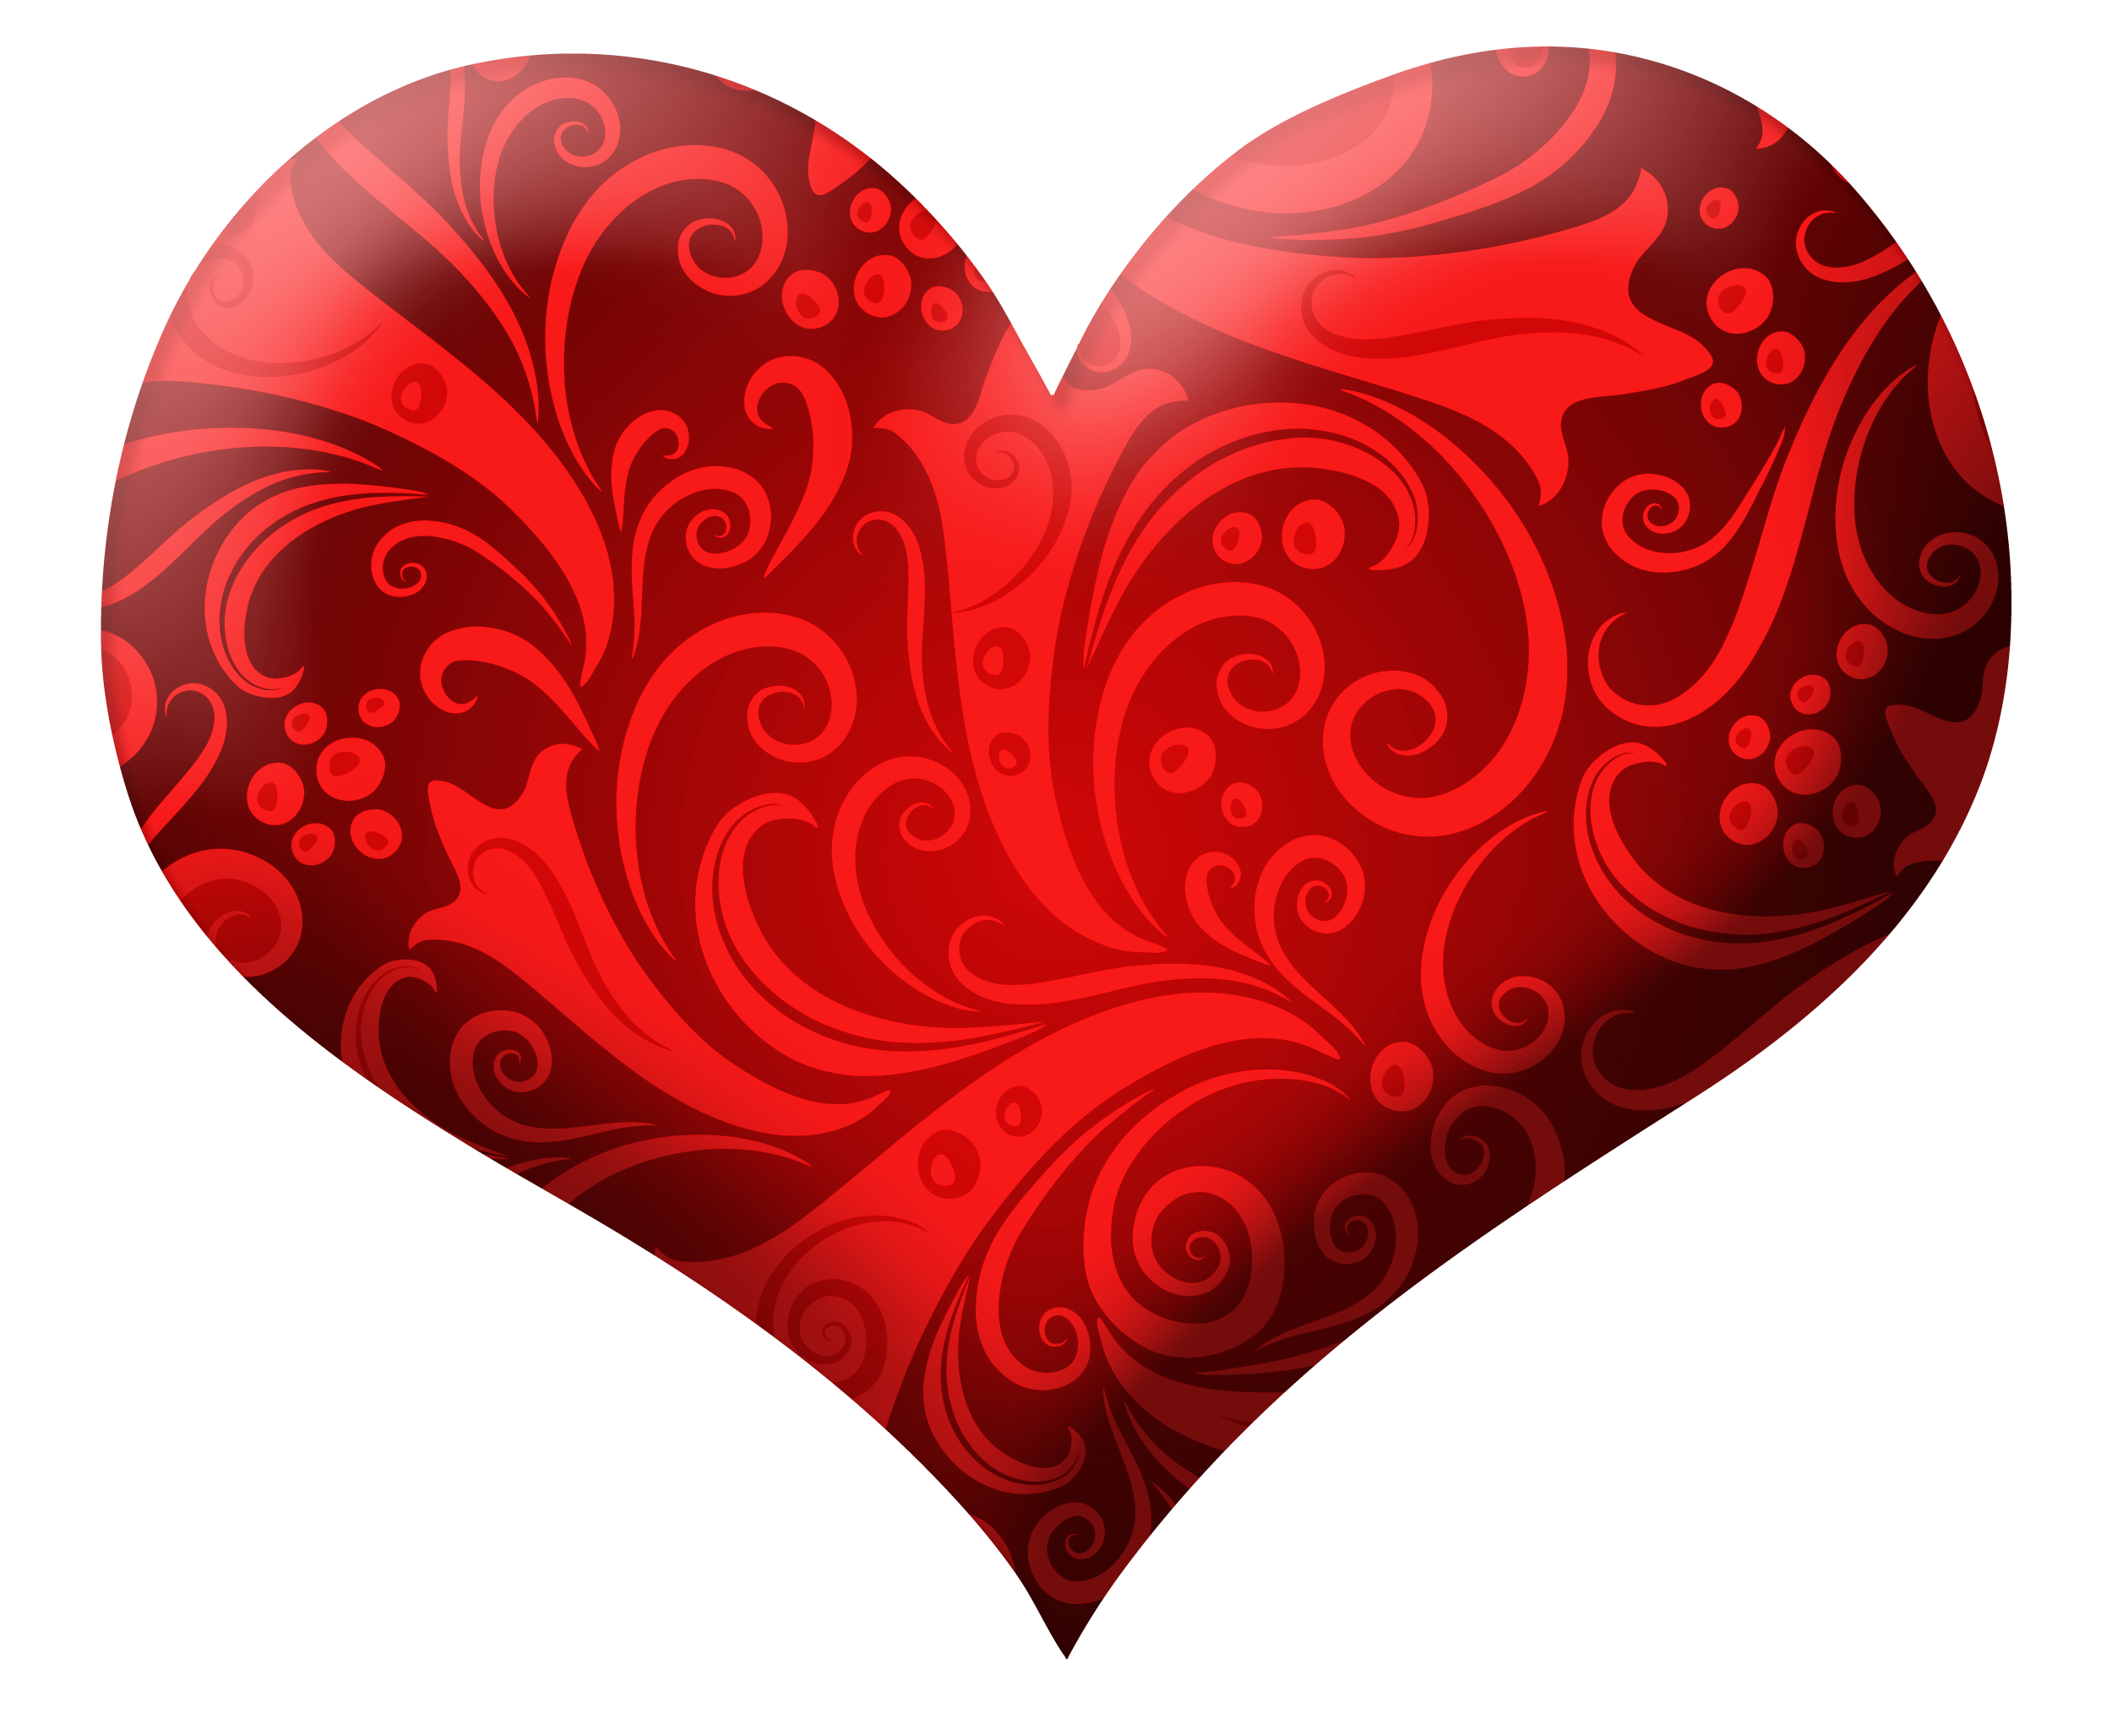 Red heart clipart png. With ornaments picture gallery